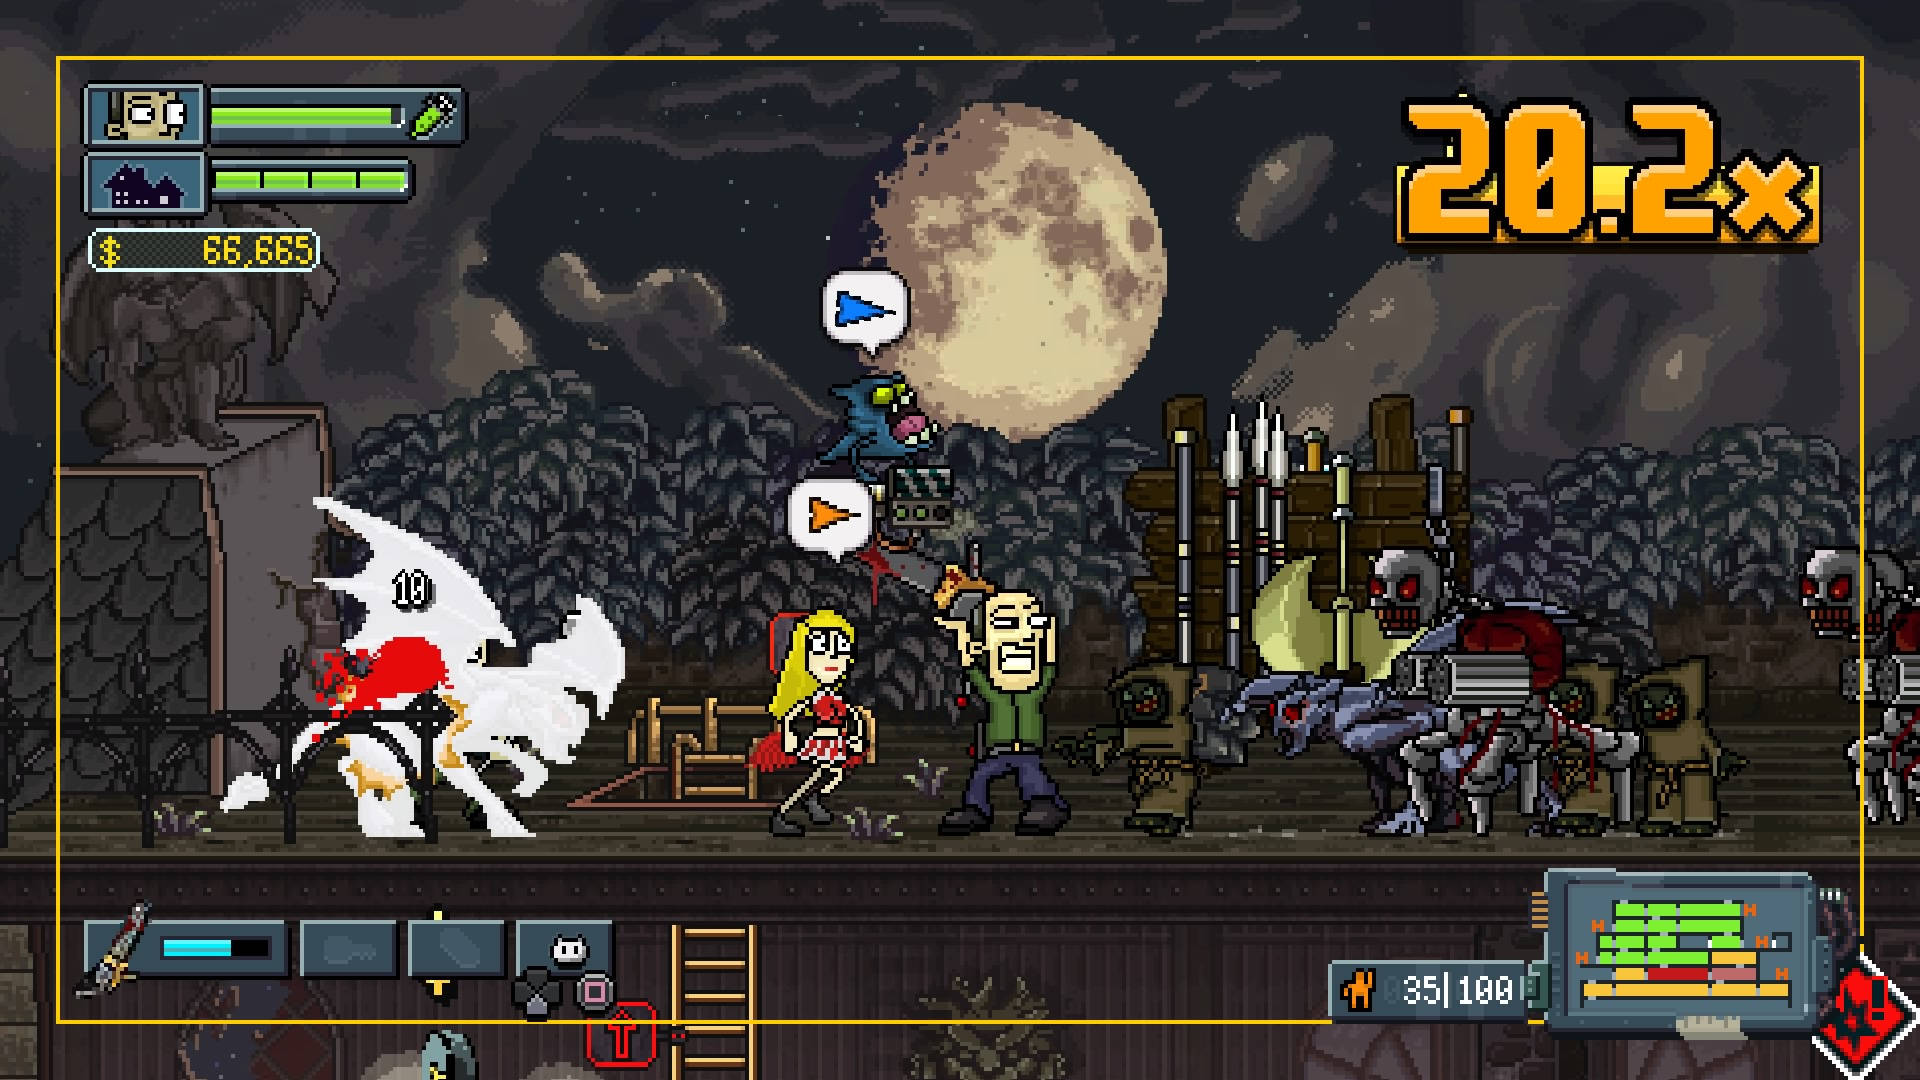 1980s, 2D, Action, arcade, bitComposer Interactive, Horror, indie, My Night Job, My Night Job Review, Pixel Graphics, Platformer, PS4, PS4 Review, Webcore Games